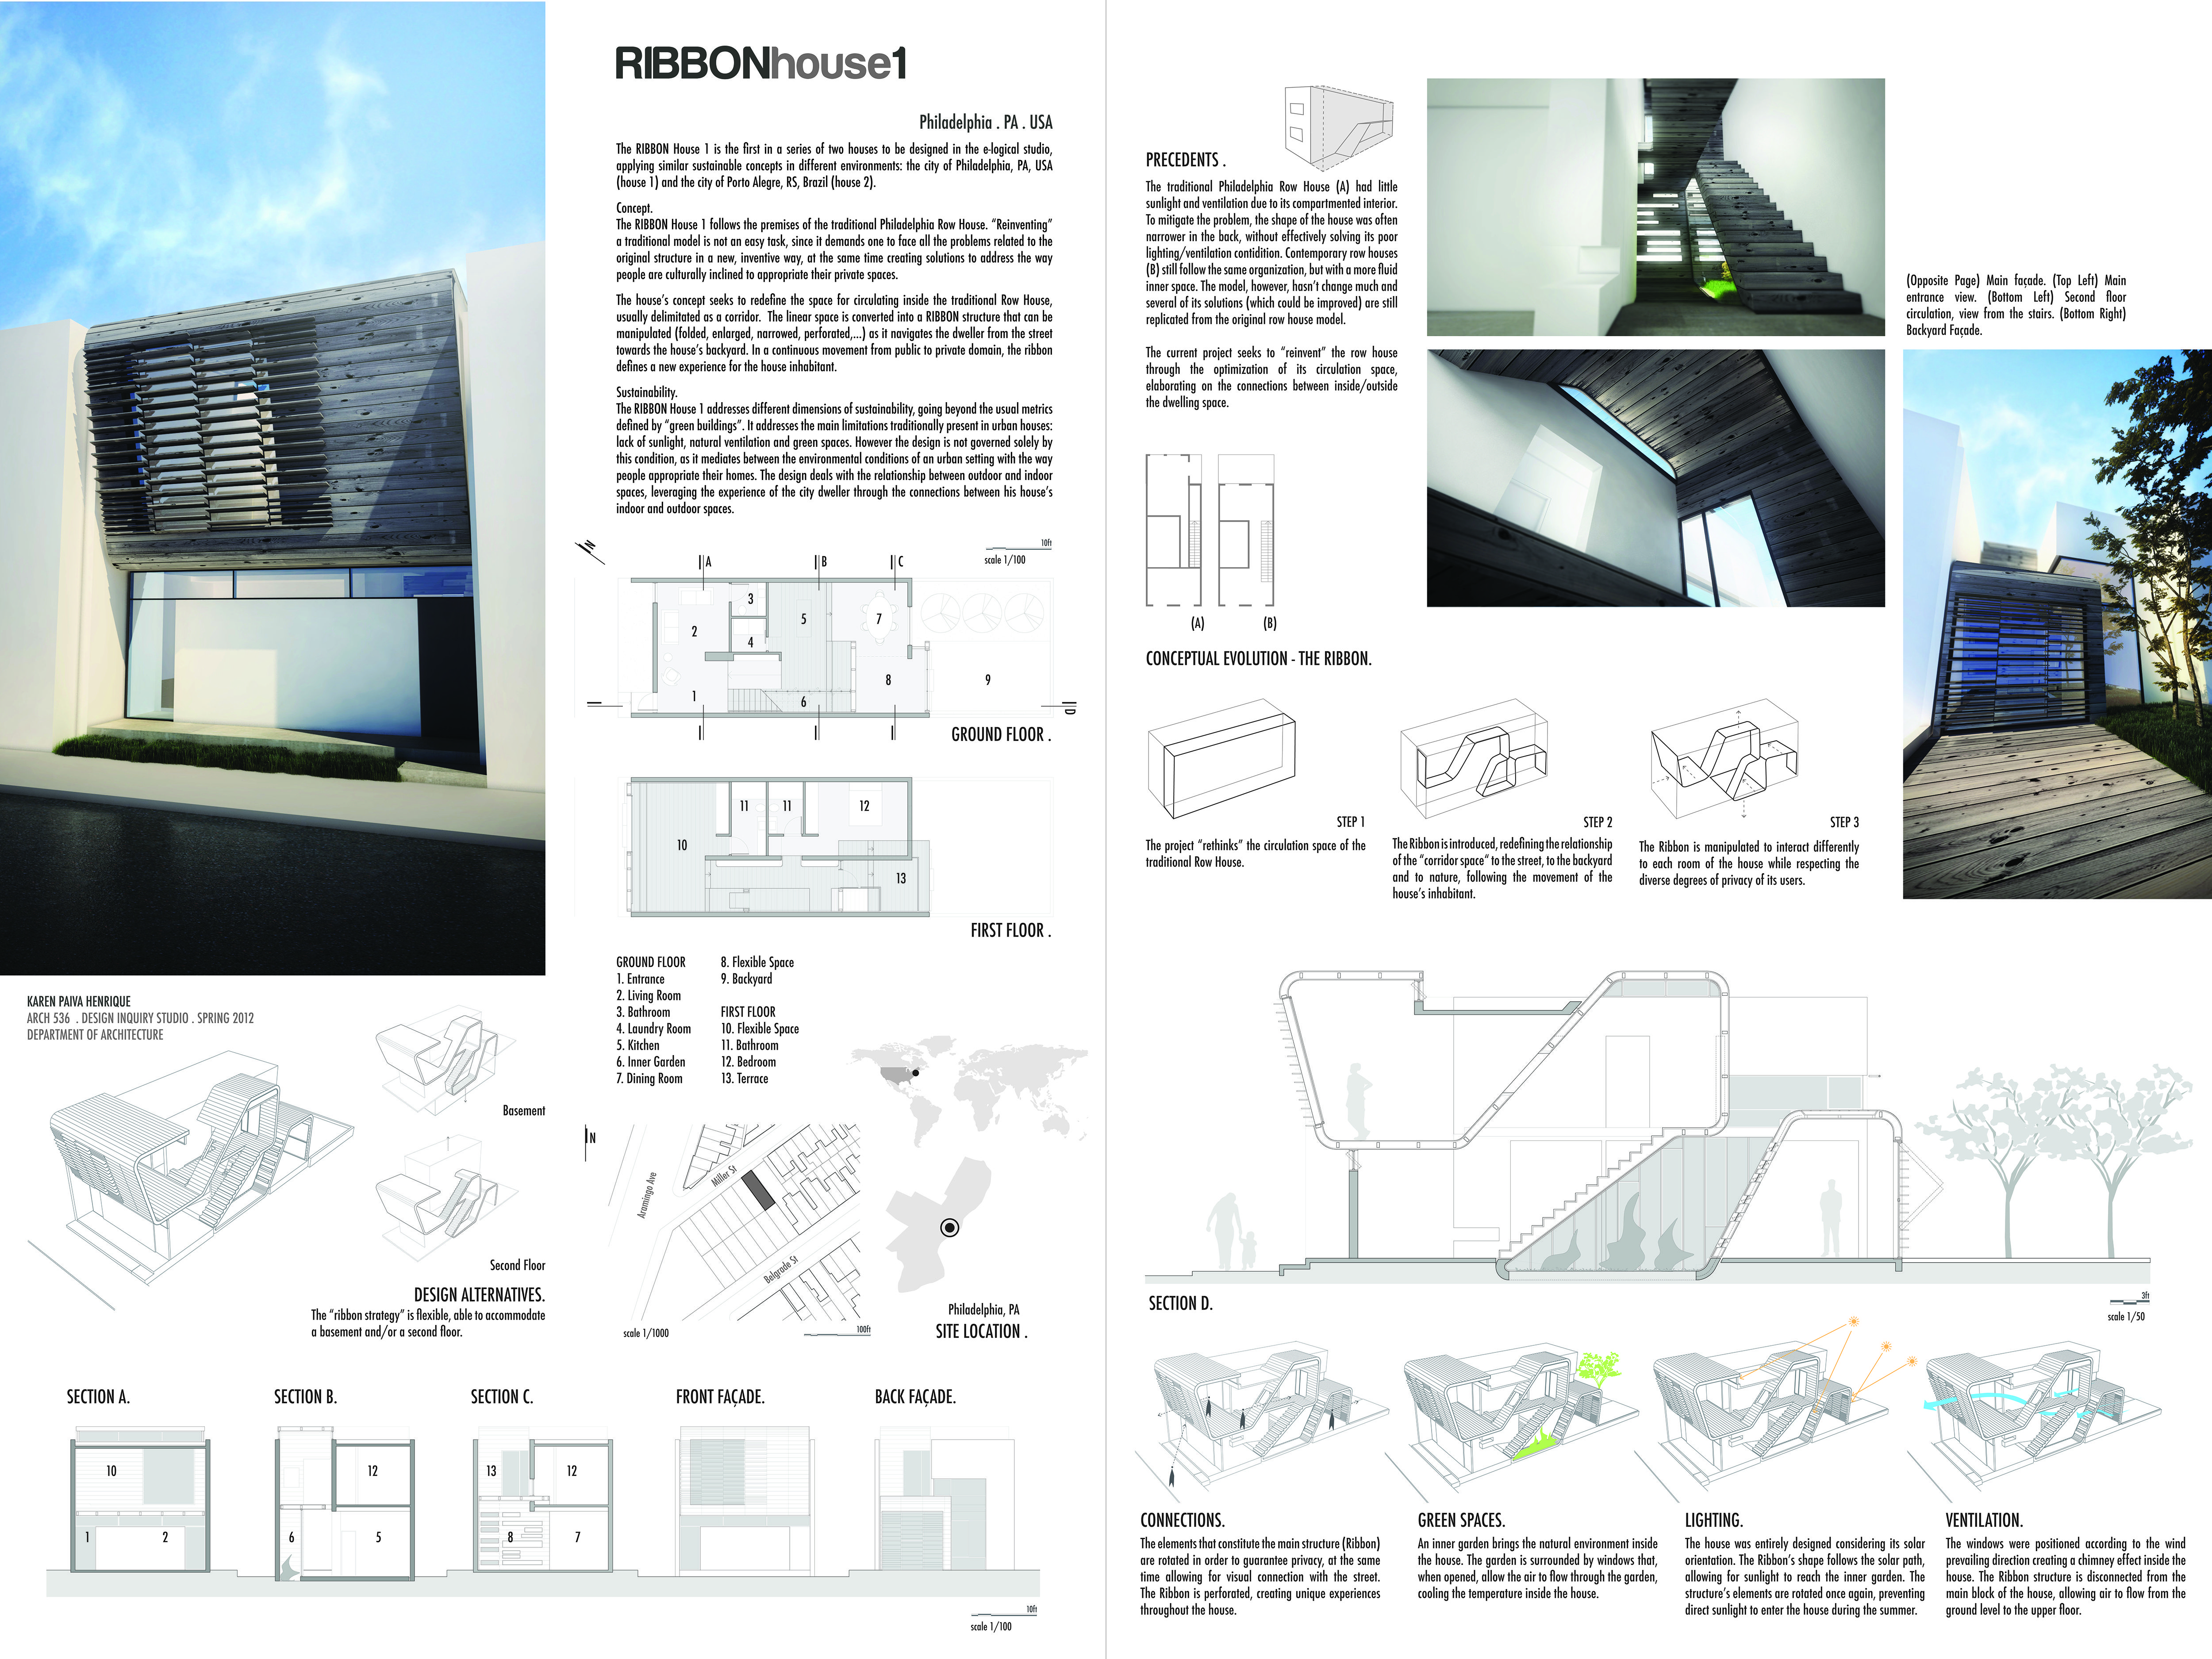 Architectural board showing drawings for the Ribbon House I ...